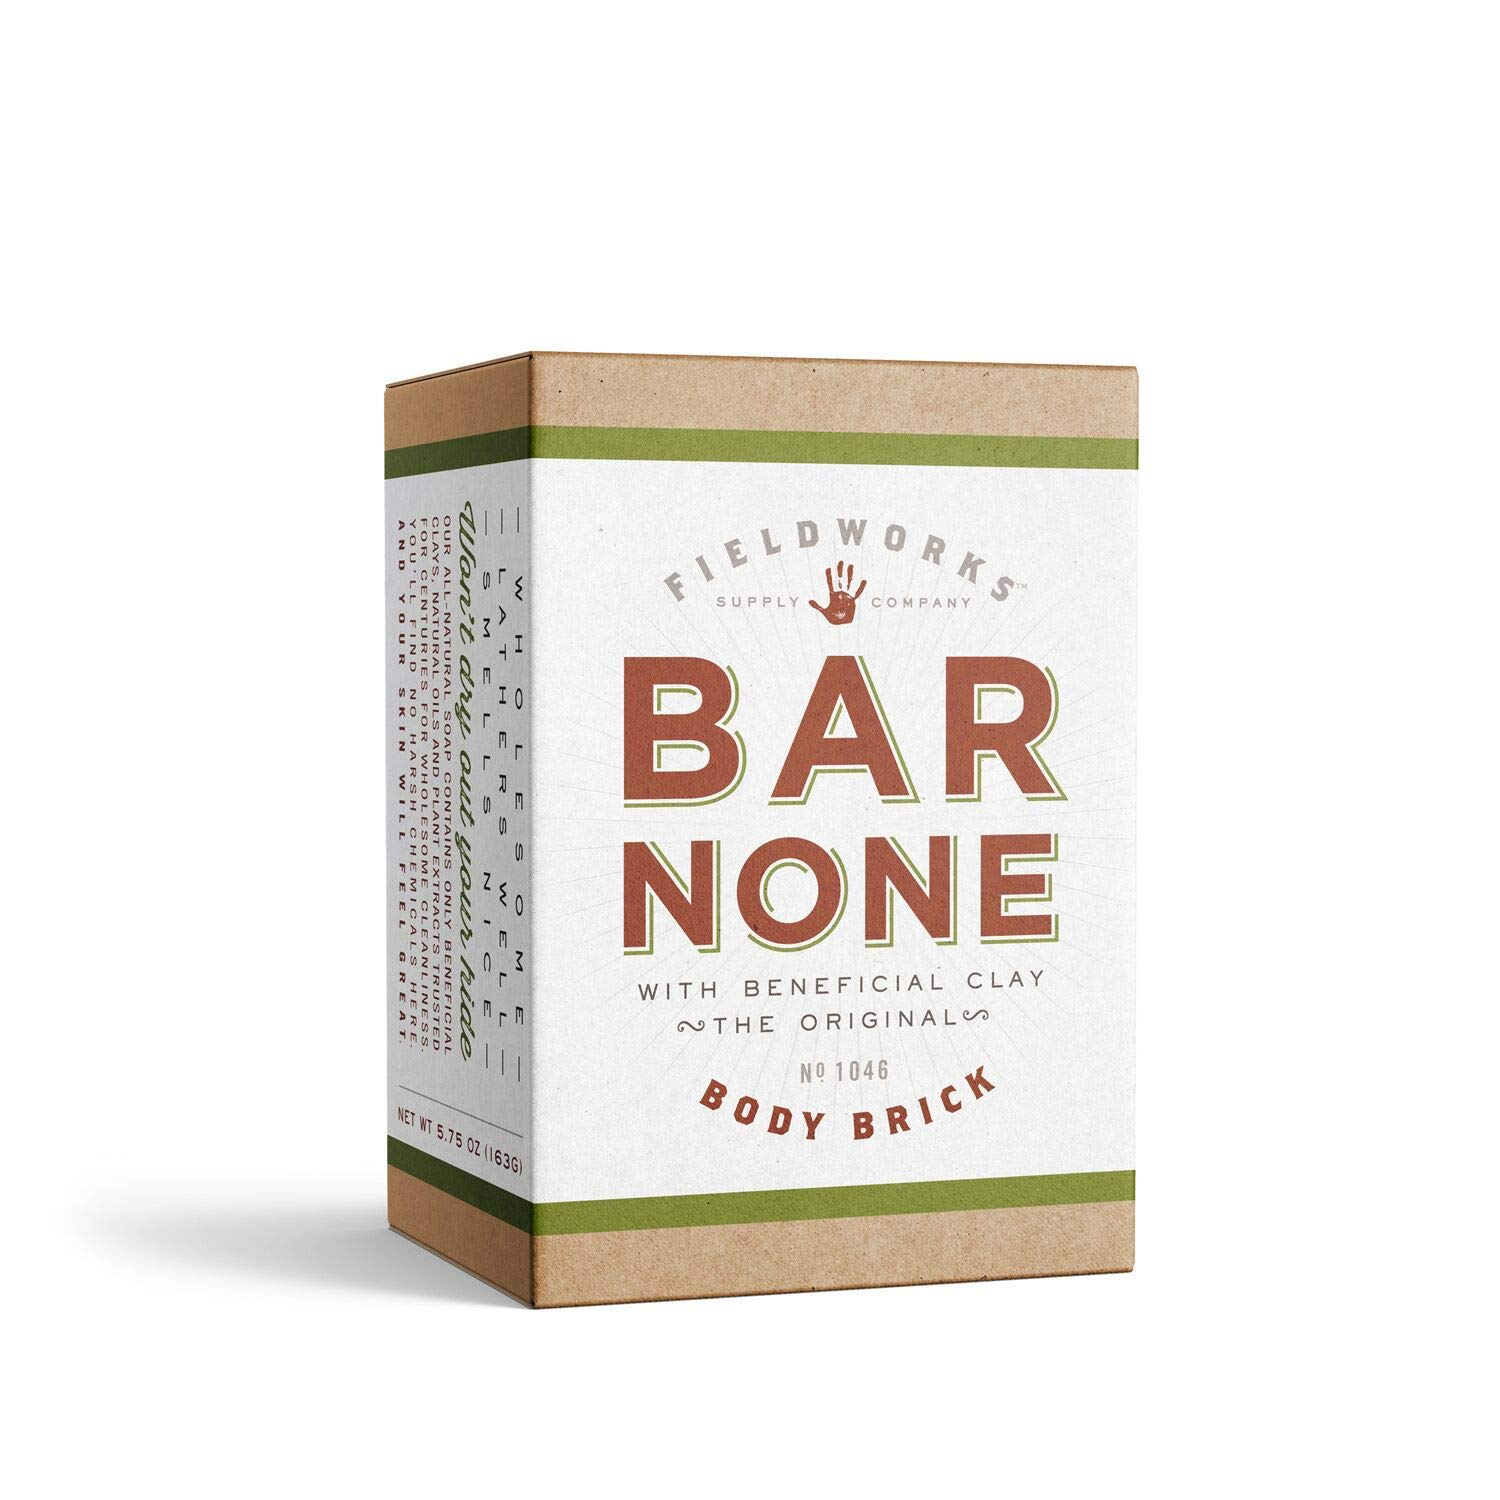 Organic All Natural Body Wash Soap.Aloe, Shea Butter, Bentonite and Essential Oils. Concentrated-Long Lasting, Eco-Friendly. (1 Pack - Bar None)